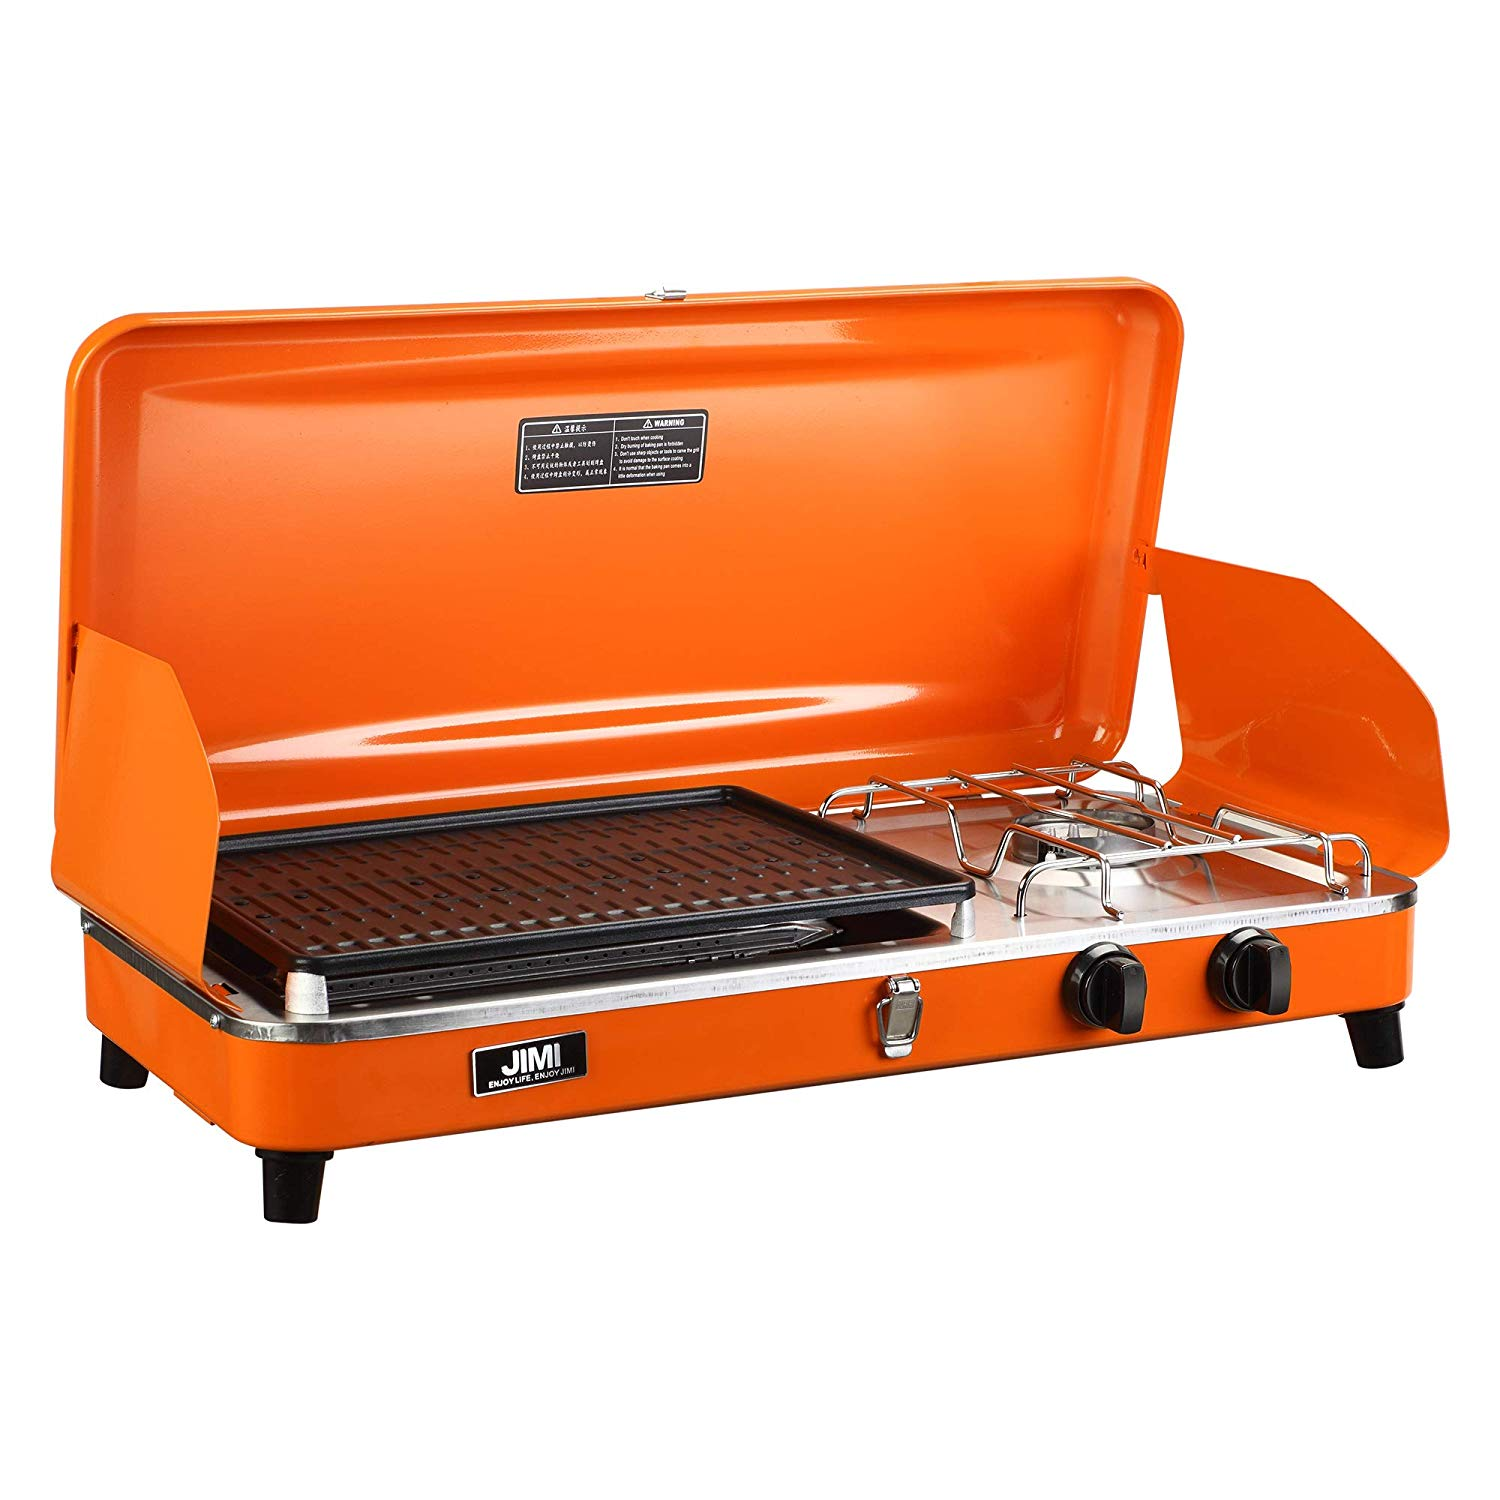 5a05efe6434abe Get Quotations · Outdoor Dual-Burner Camping Grill/Stove Portable Gas Grill  Tailgating Cooker with Hose and